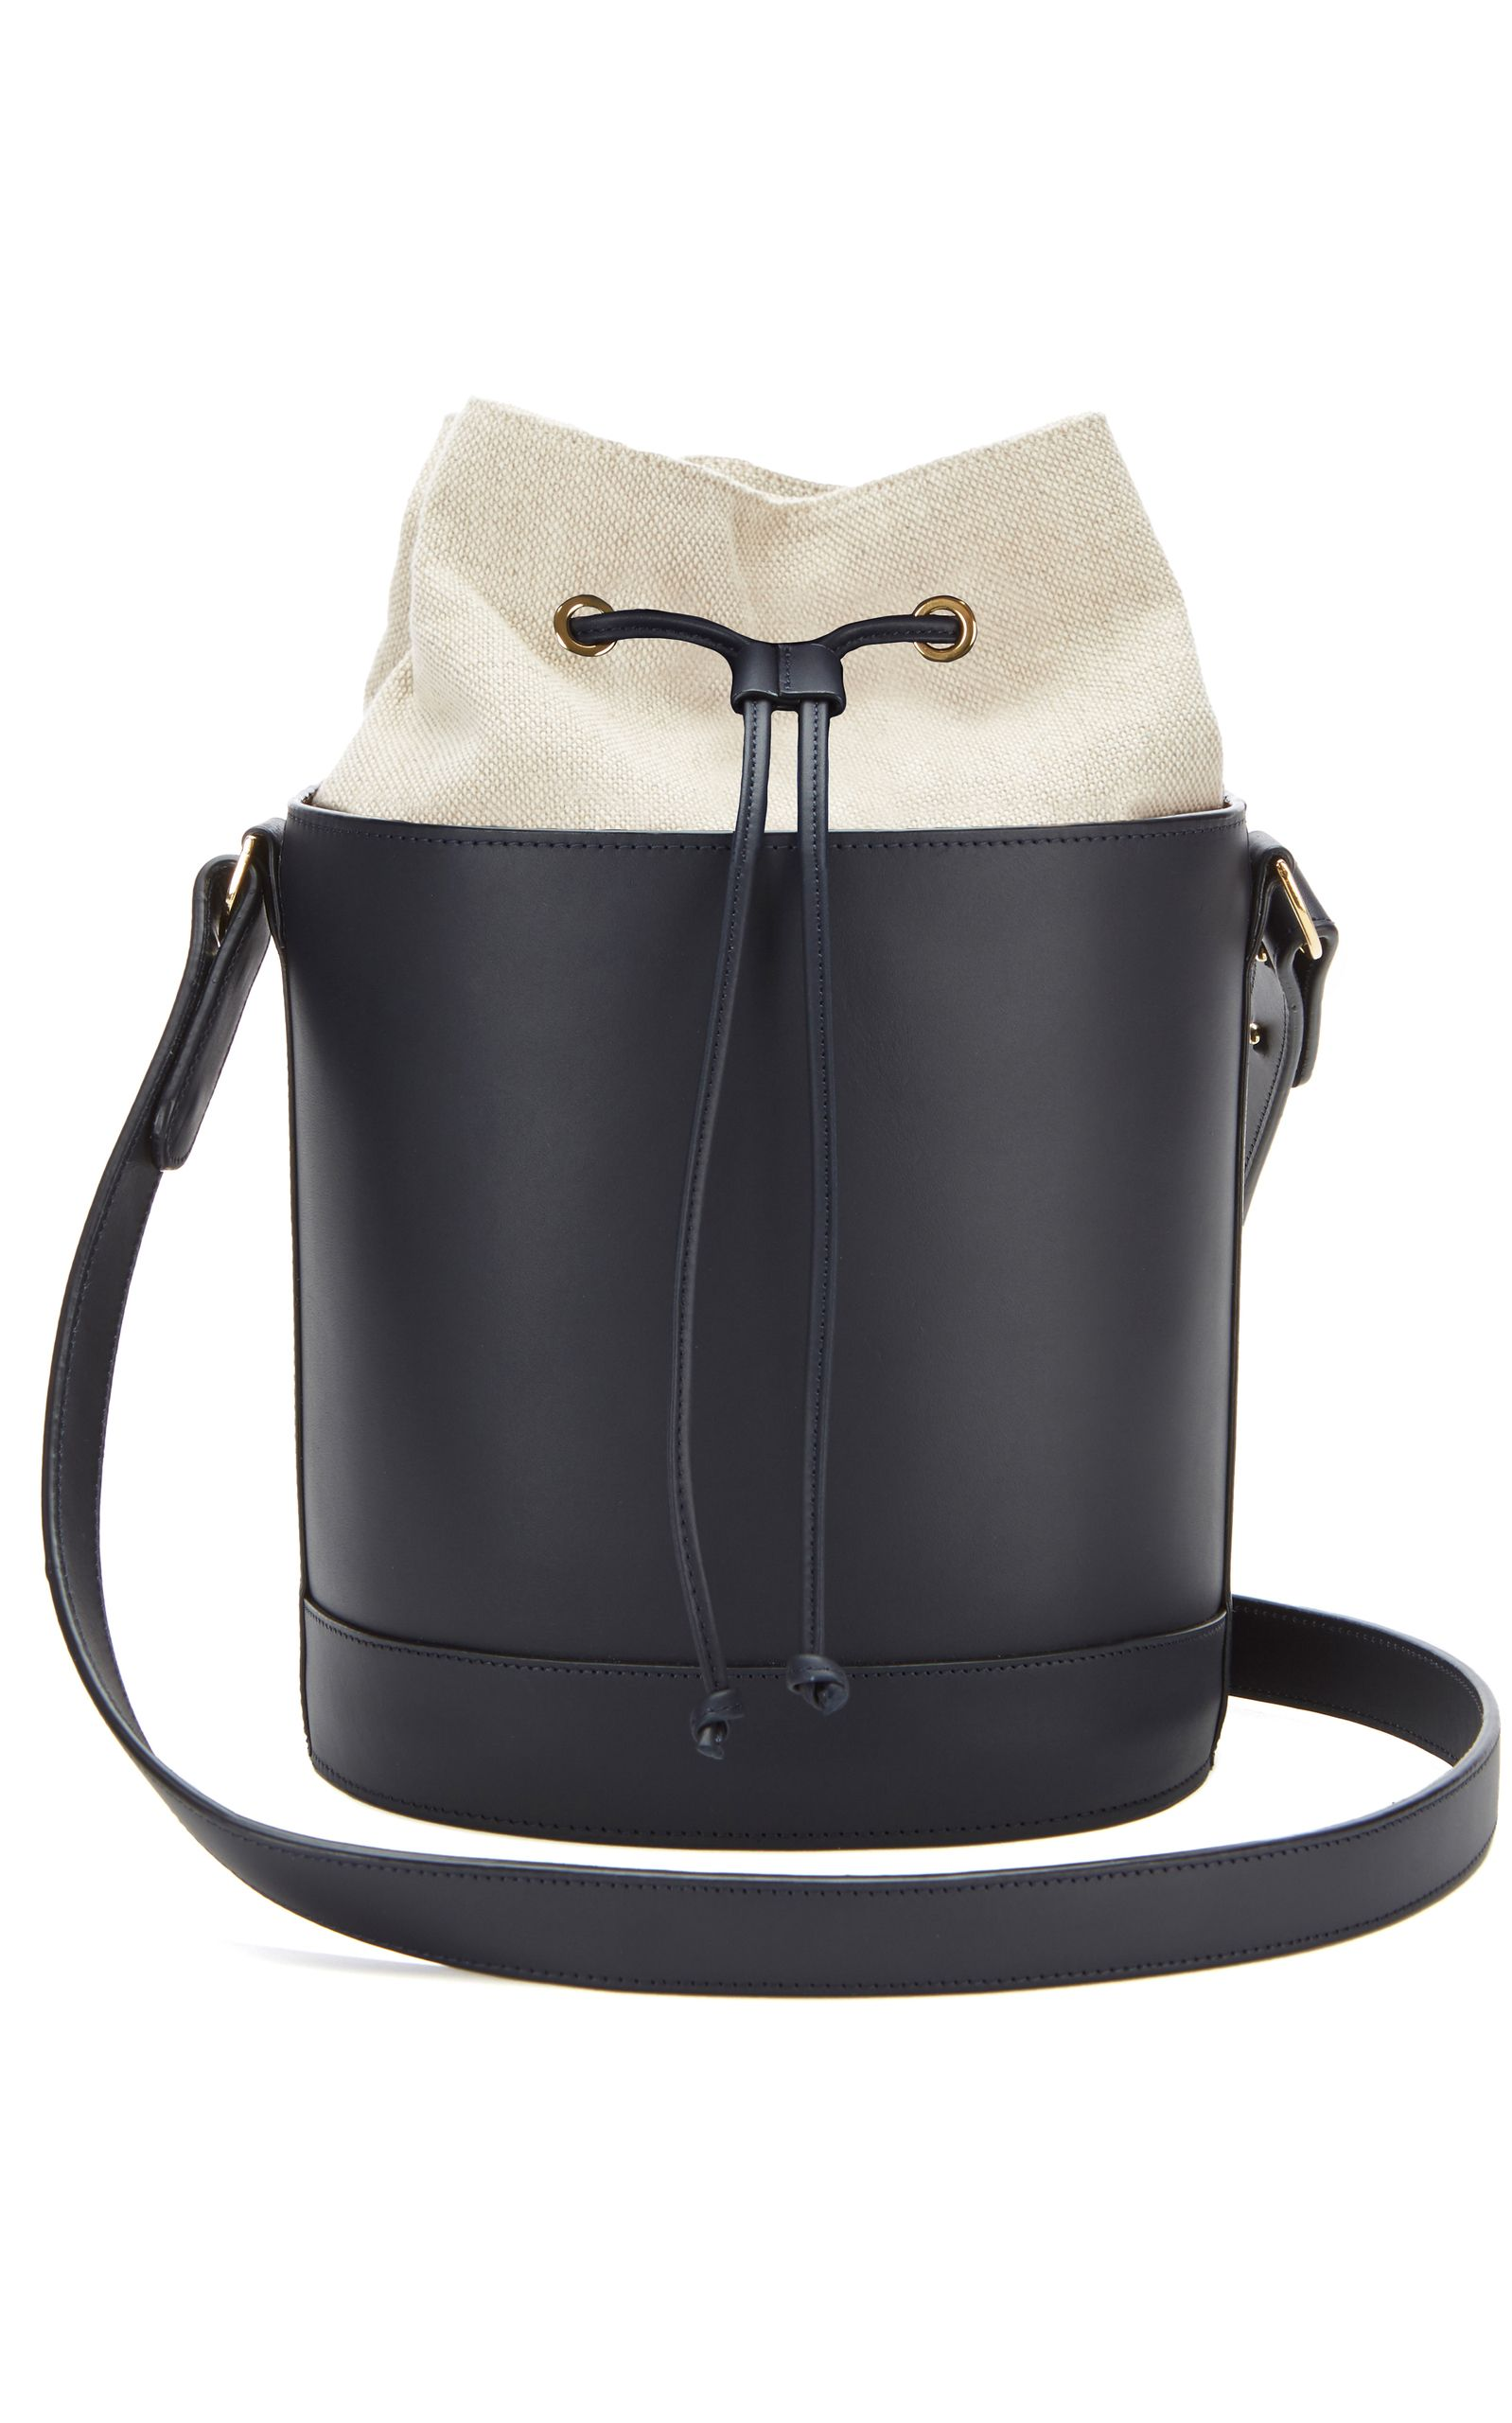 43a94758f4 MONTUNAS M'ONOGRAMMABLE LEATHER BUCKET BAG WITH GOLD. #montunas #bags  #leather #bucket #